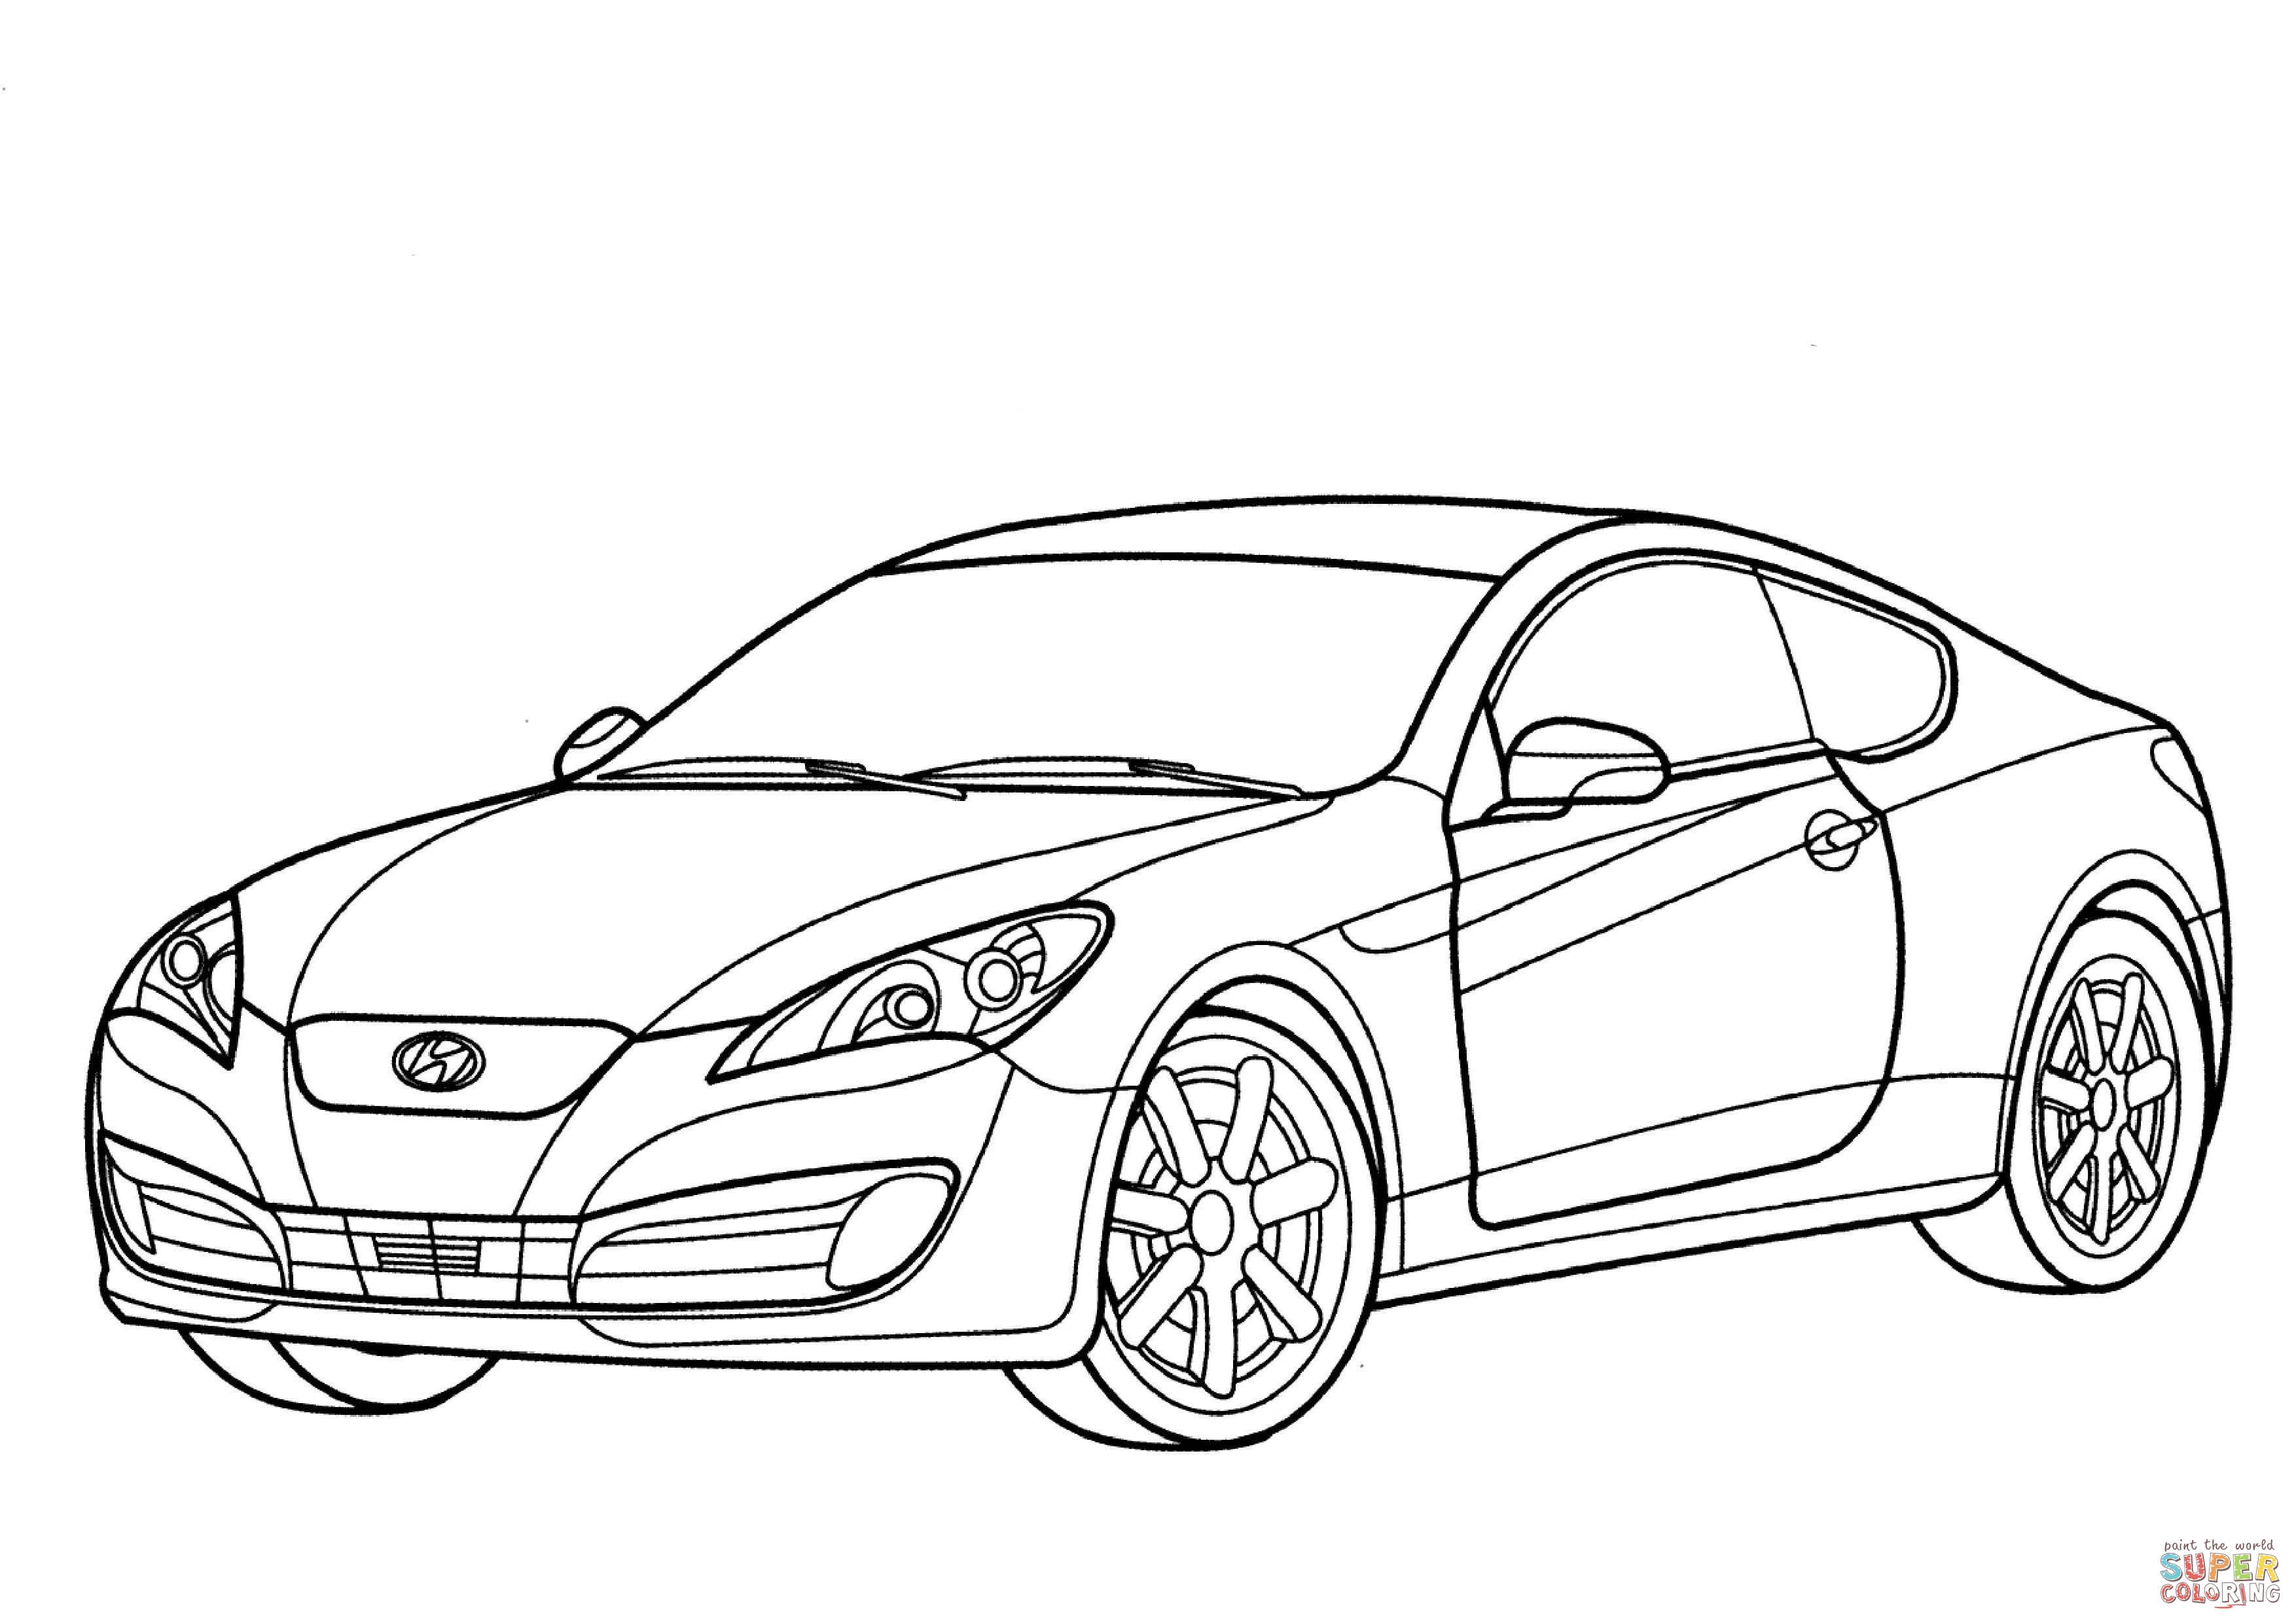 3508x2480 Hyundai Genesis Coupe Coloring Page Free Printable Coloring Pages